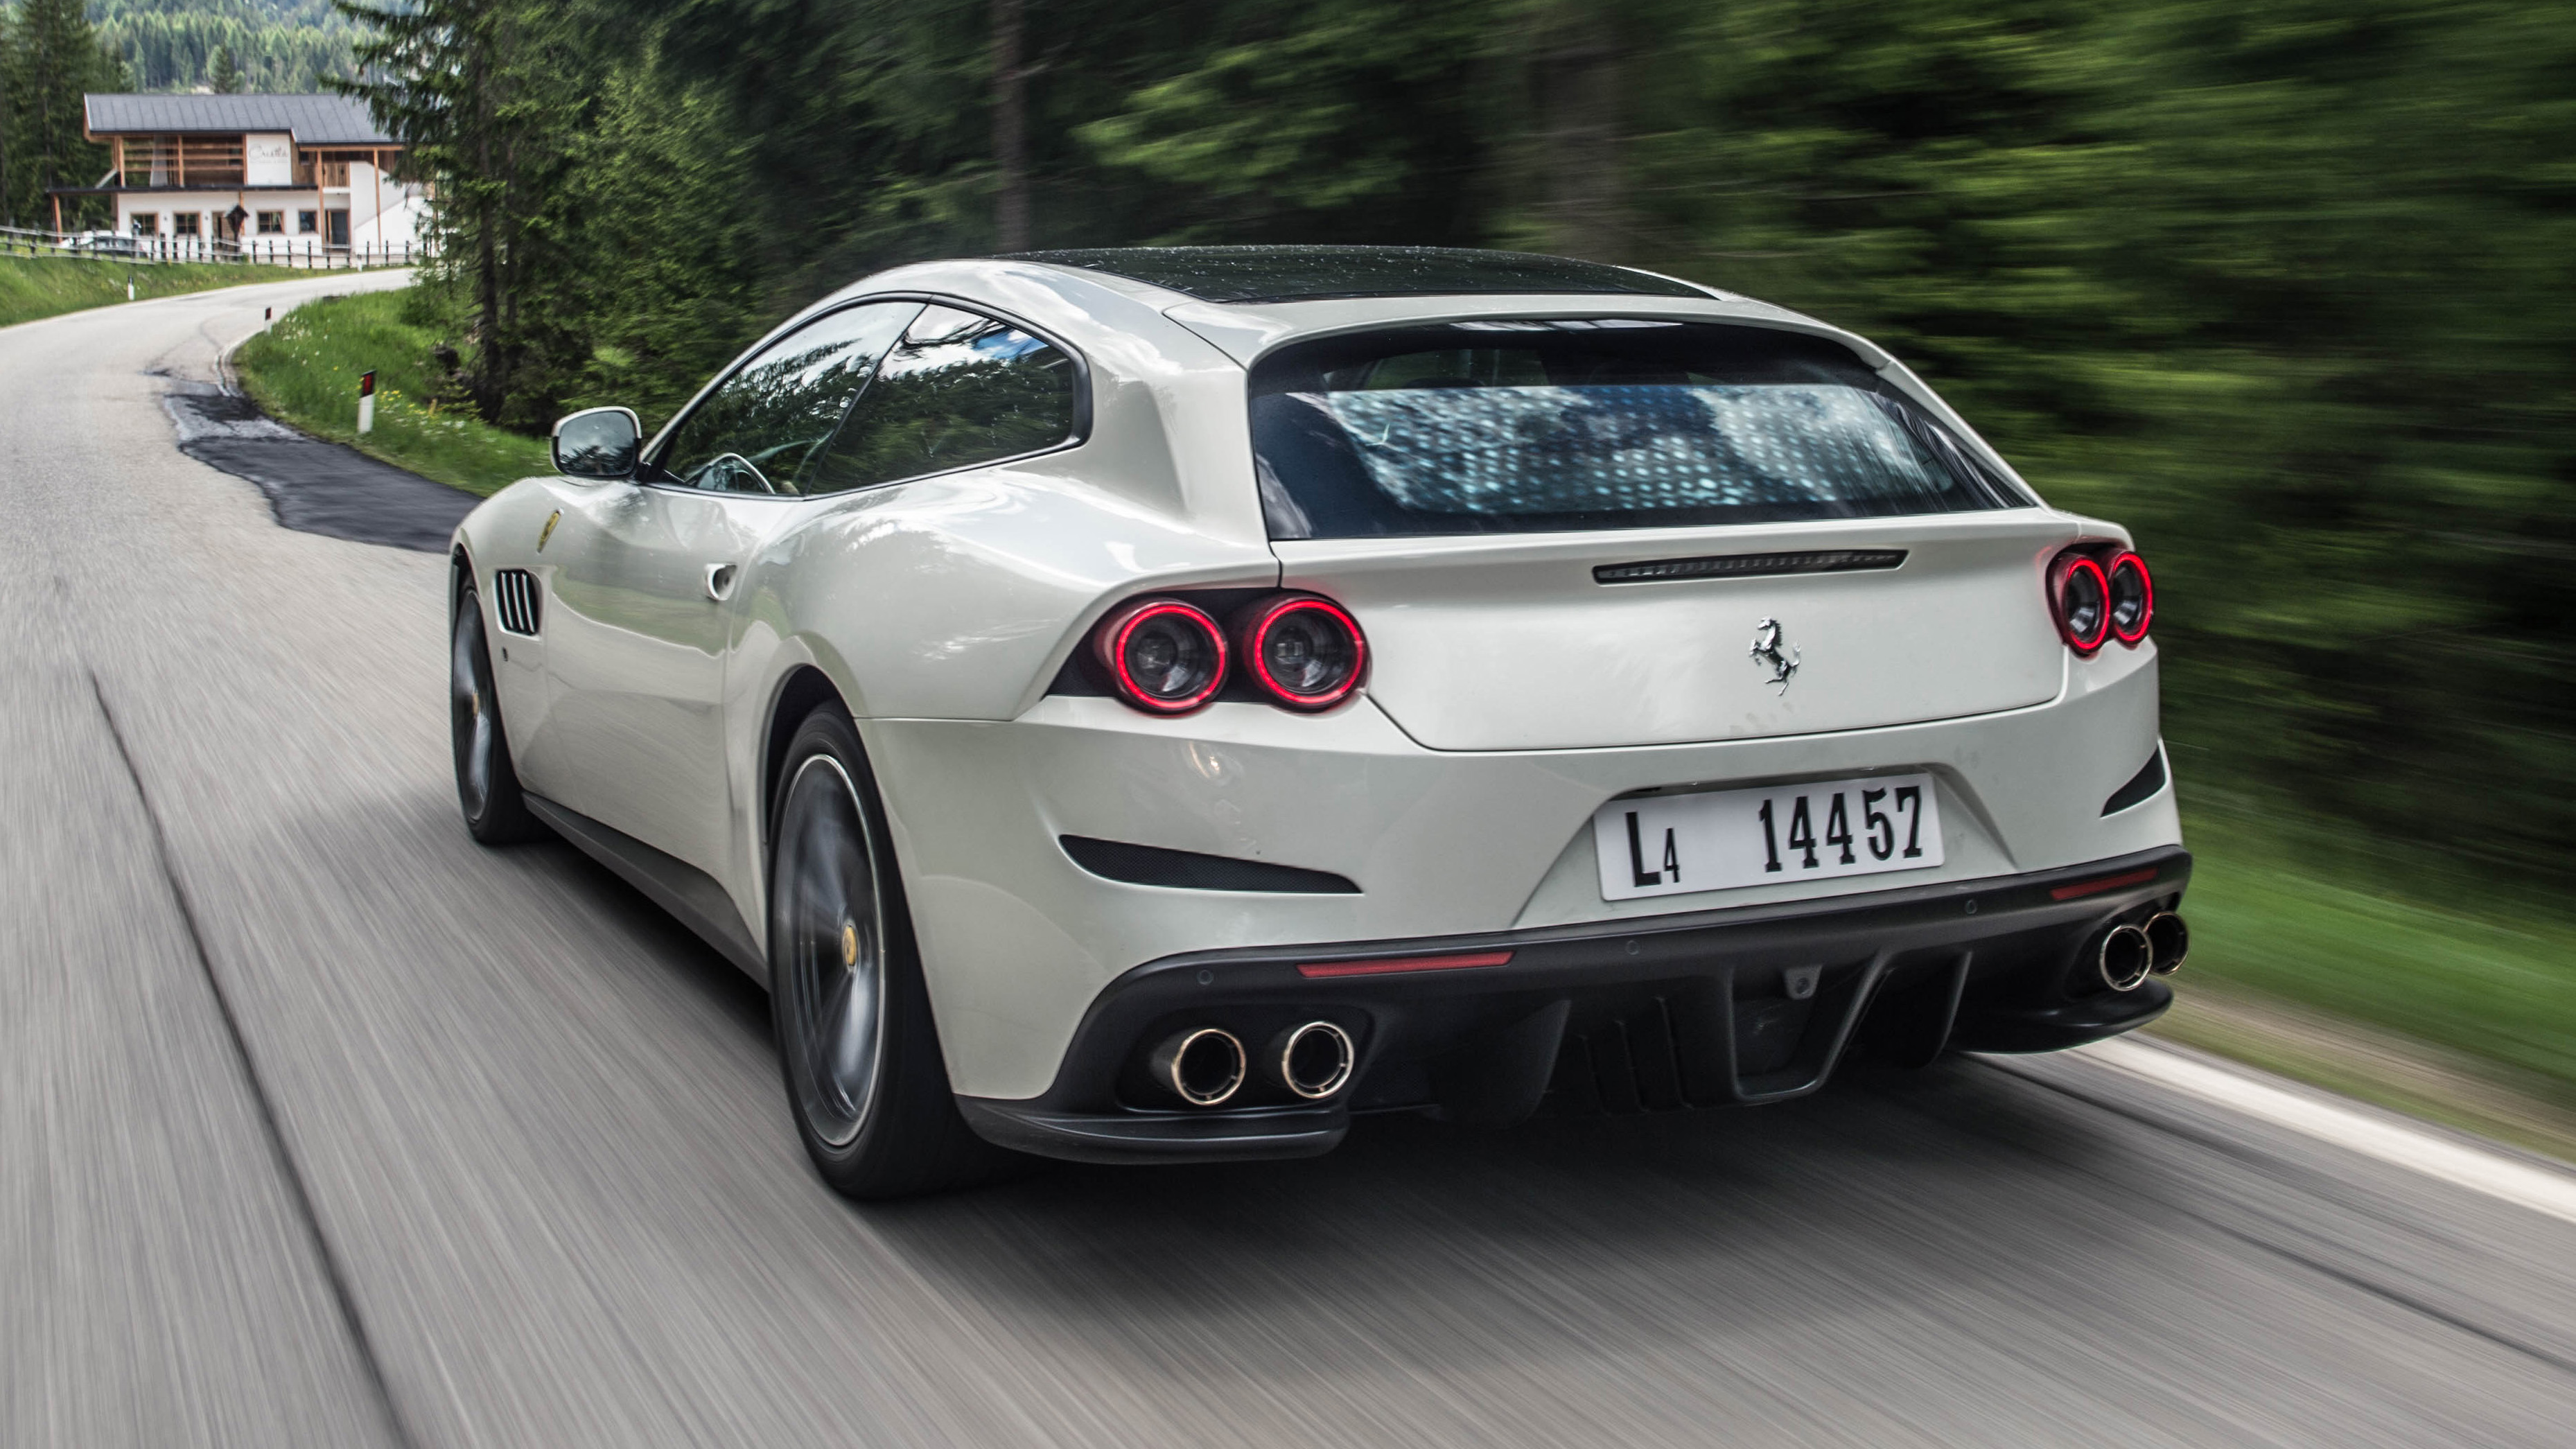 Review The New Ferrari Gtc4lusso Top Gear